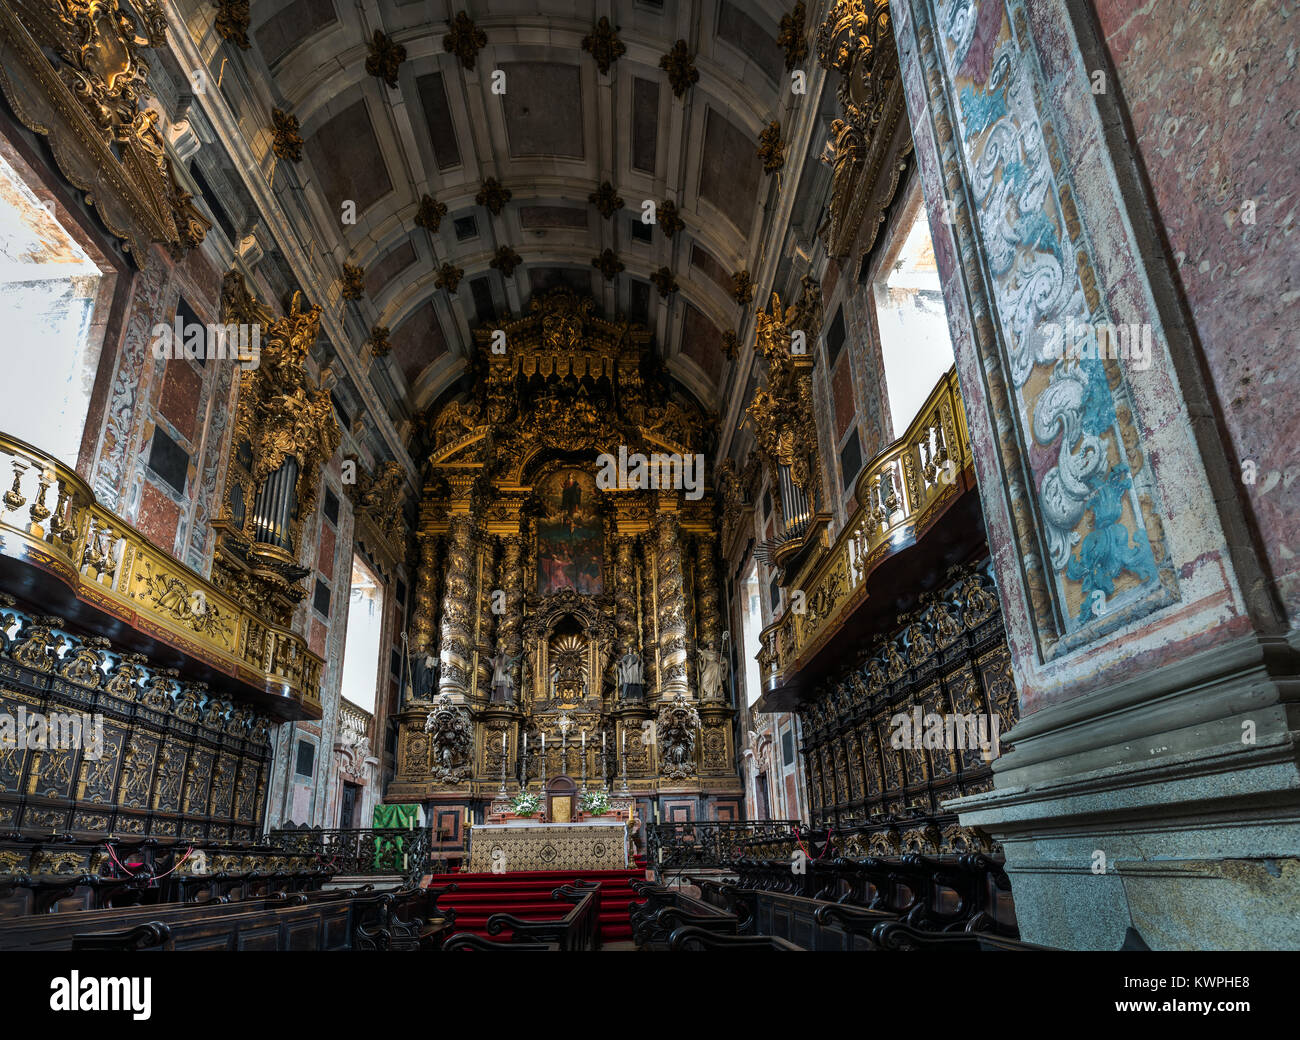 Porto, Portugal, August 14, 2017: Porto's Cathedral main altar. The Cathedral is one of the most important tourist - Stock Image